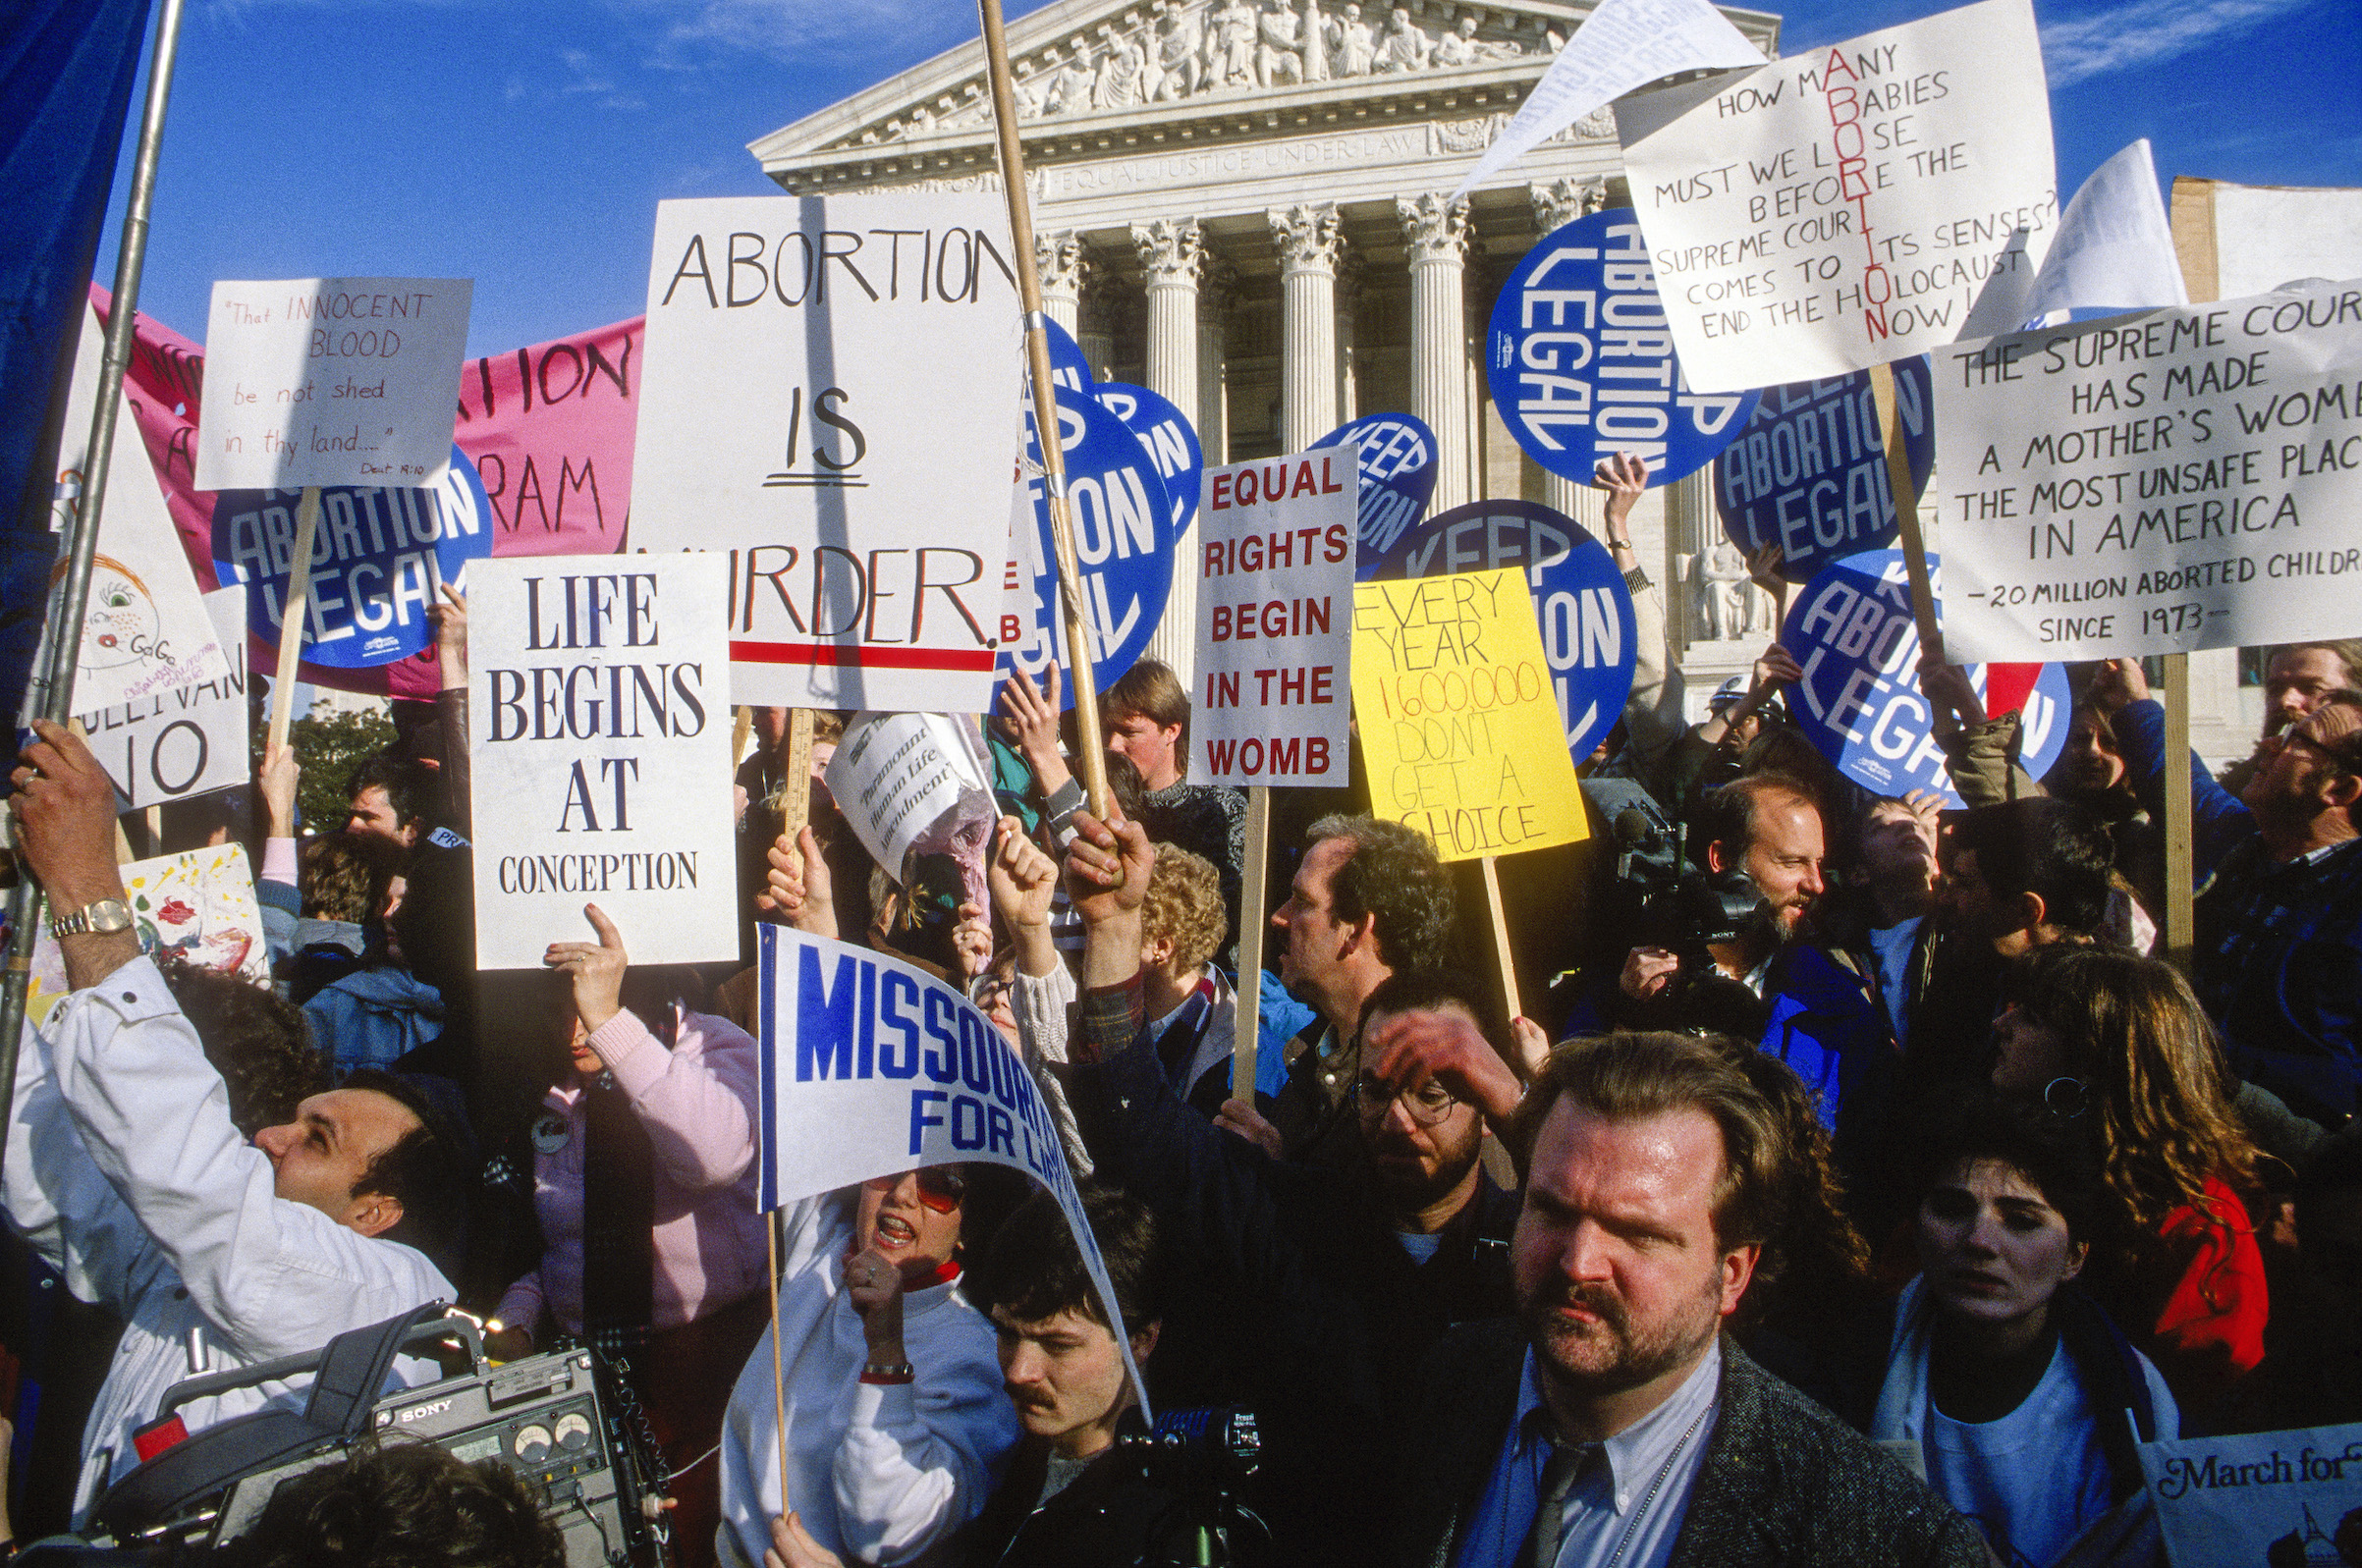 Anti-abortion and abortion-rights demonstrators both wave their signs outside the United States Supreme Court Building in Washington, D.C., on Jan. 22, 1989.